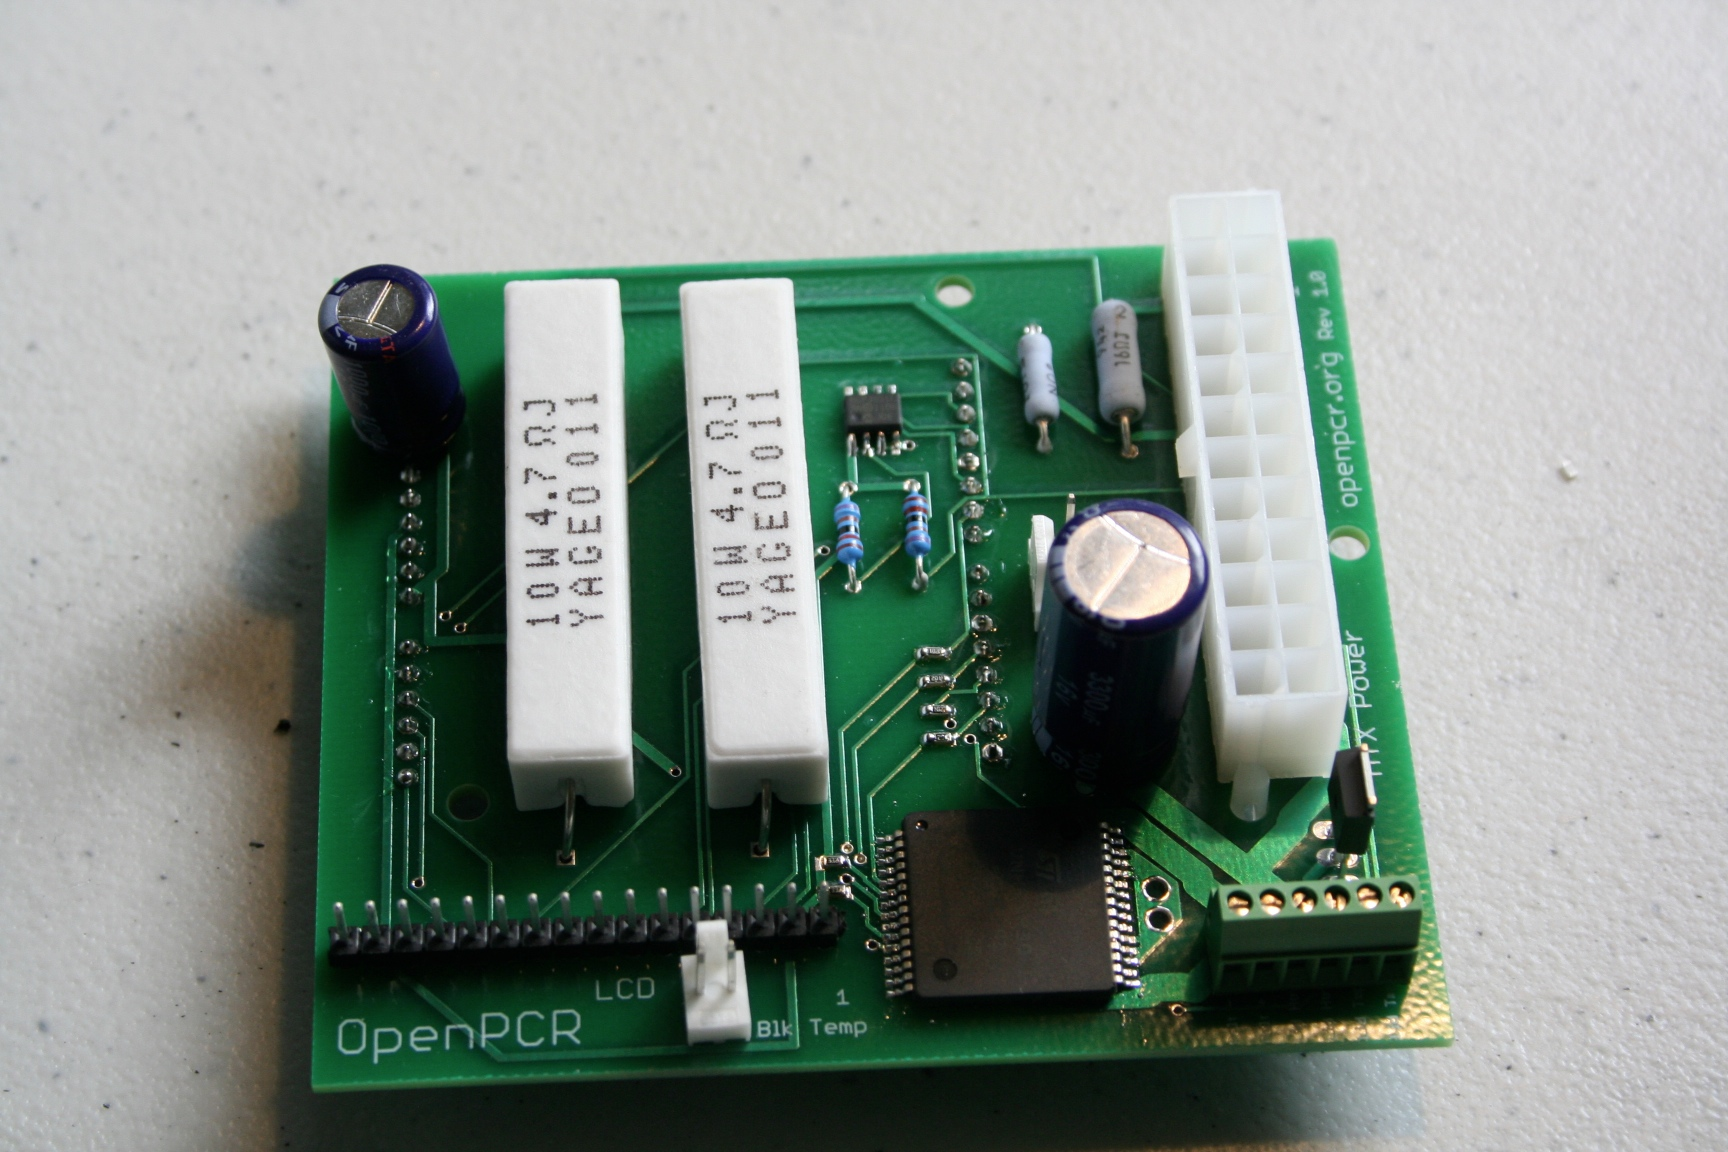 Openpcr Boards Assembled Open Source Hackable Personal Circuit Board Pcb Machine Assembly The